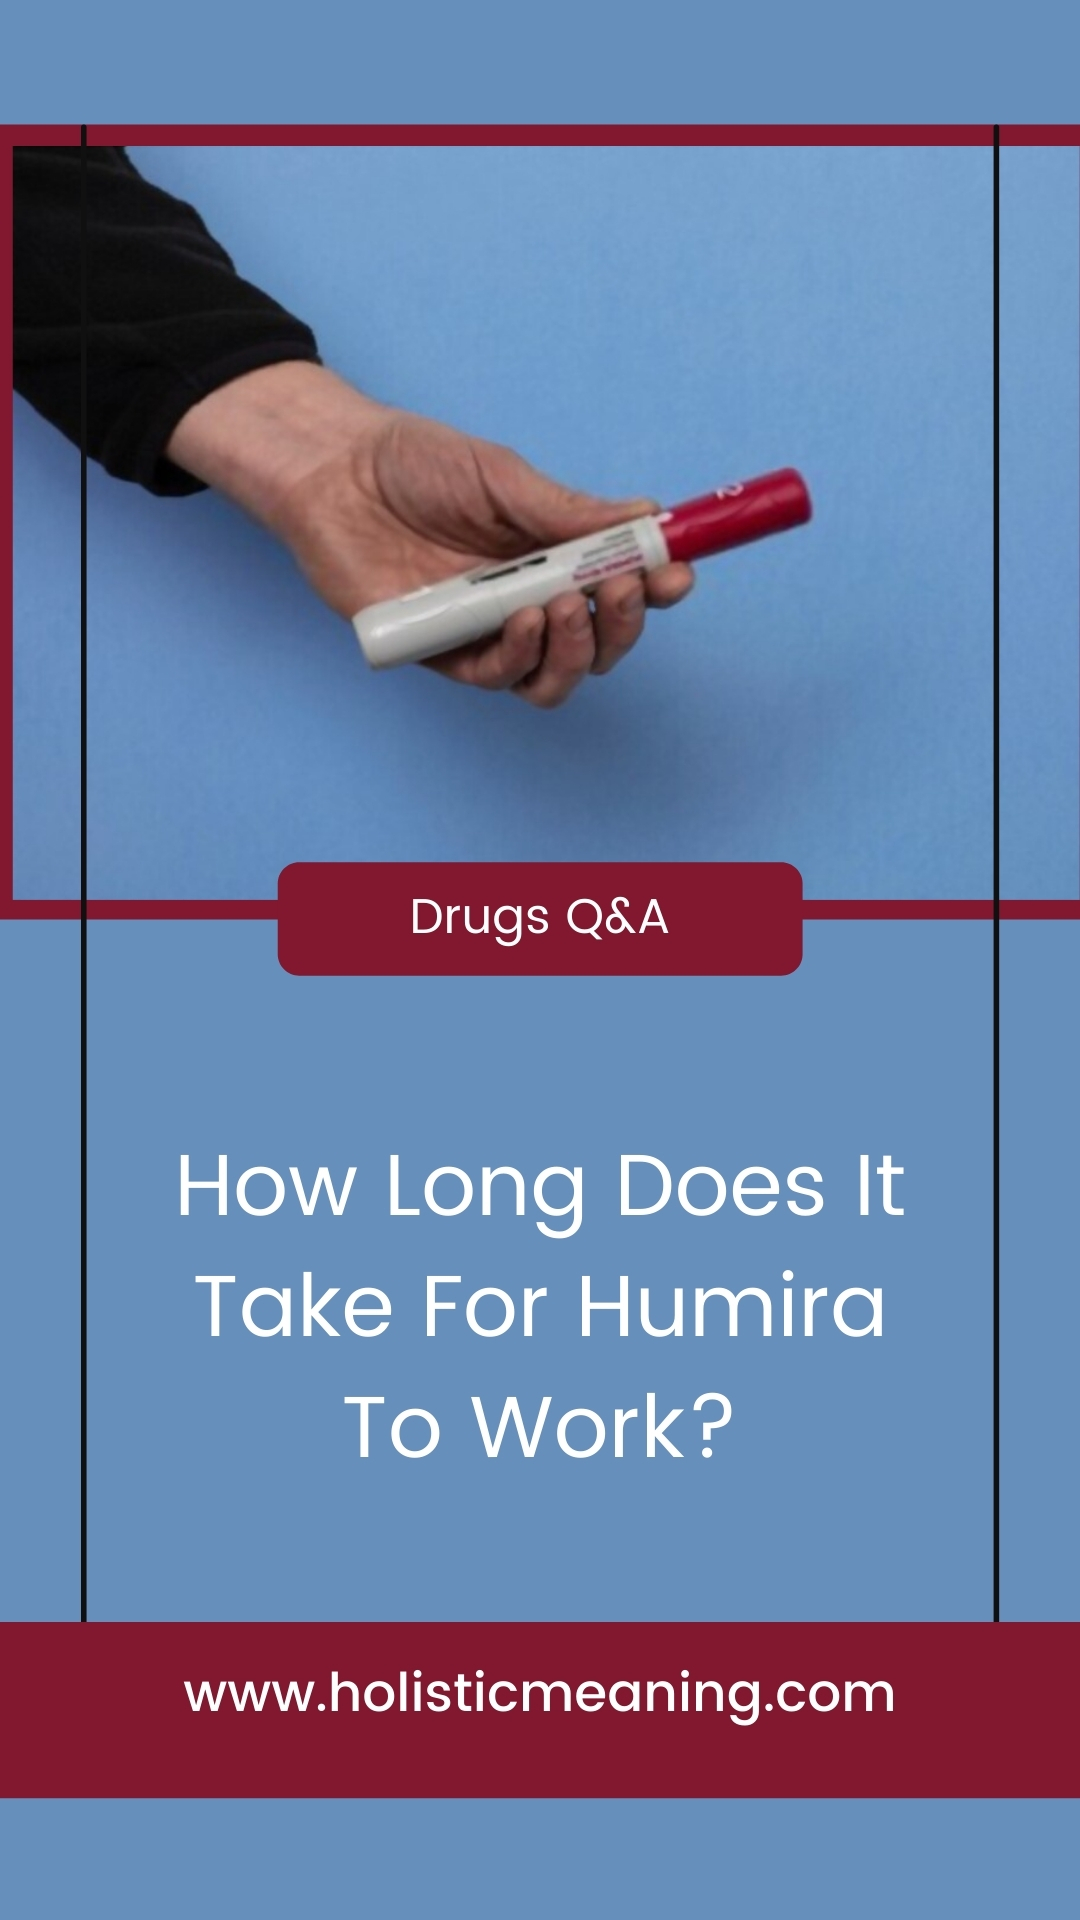 How Long Does It Take For Humira To Work?